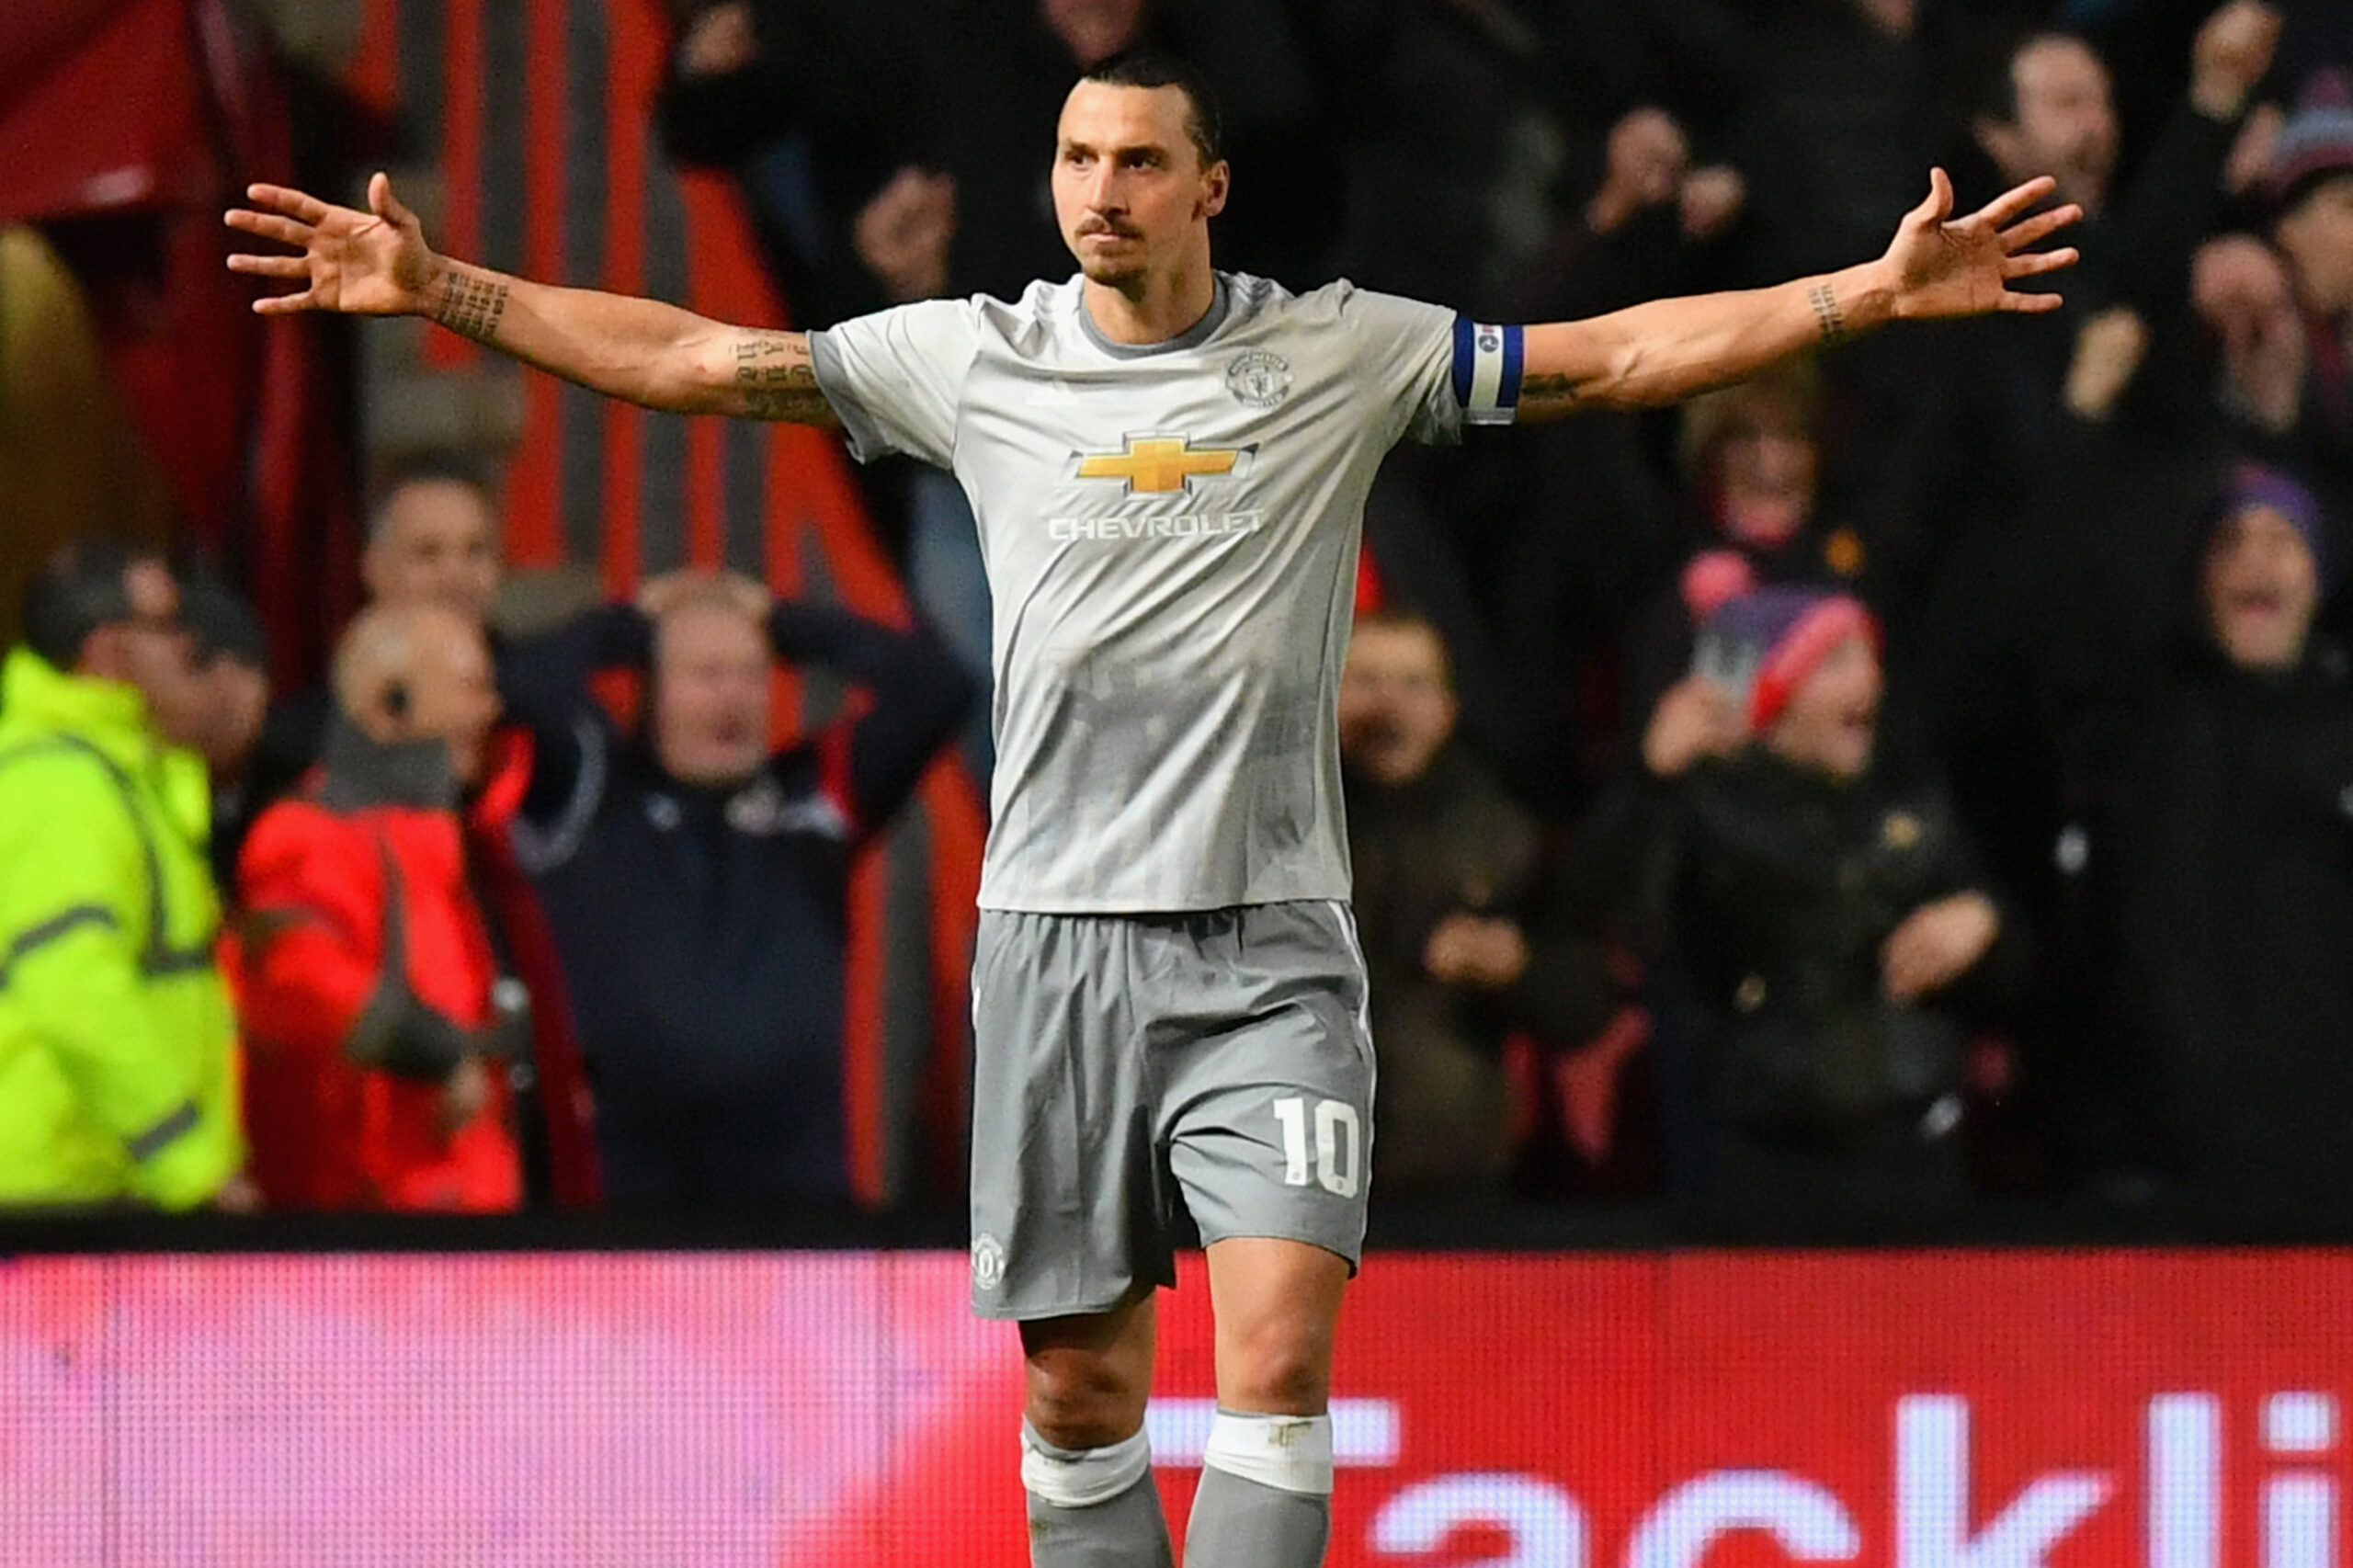 BRISTOL, ENGLAND - DECEMBER 20: Zlatan Ibrahimovic of Manchester United celebrates after scoring his sides first goal during the Carabao Cup Quarter-Final match between Bristol City and Manchester United at Ashton Gate on December 20, 2017 in Bristol, England. (Photo by Dan Mullan/Getty Images)